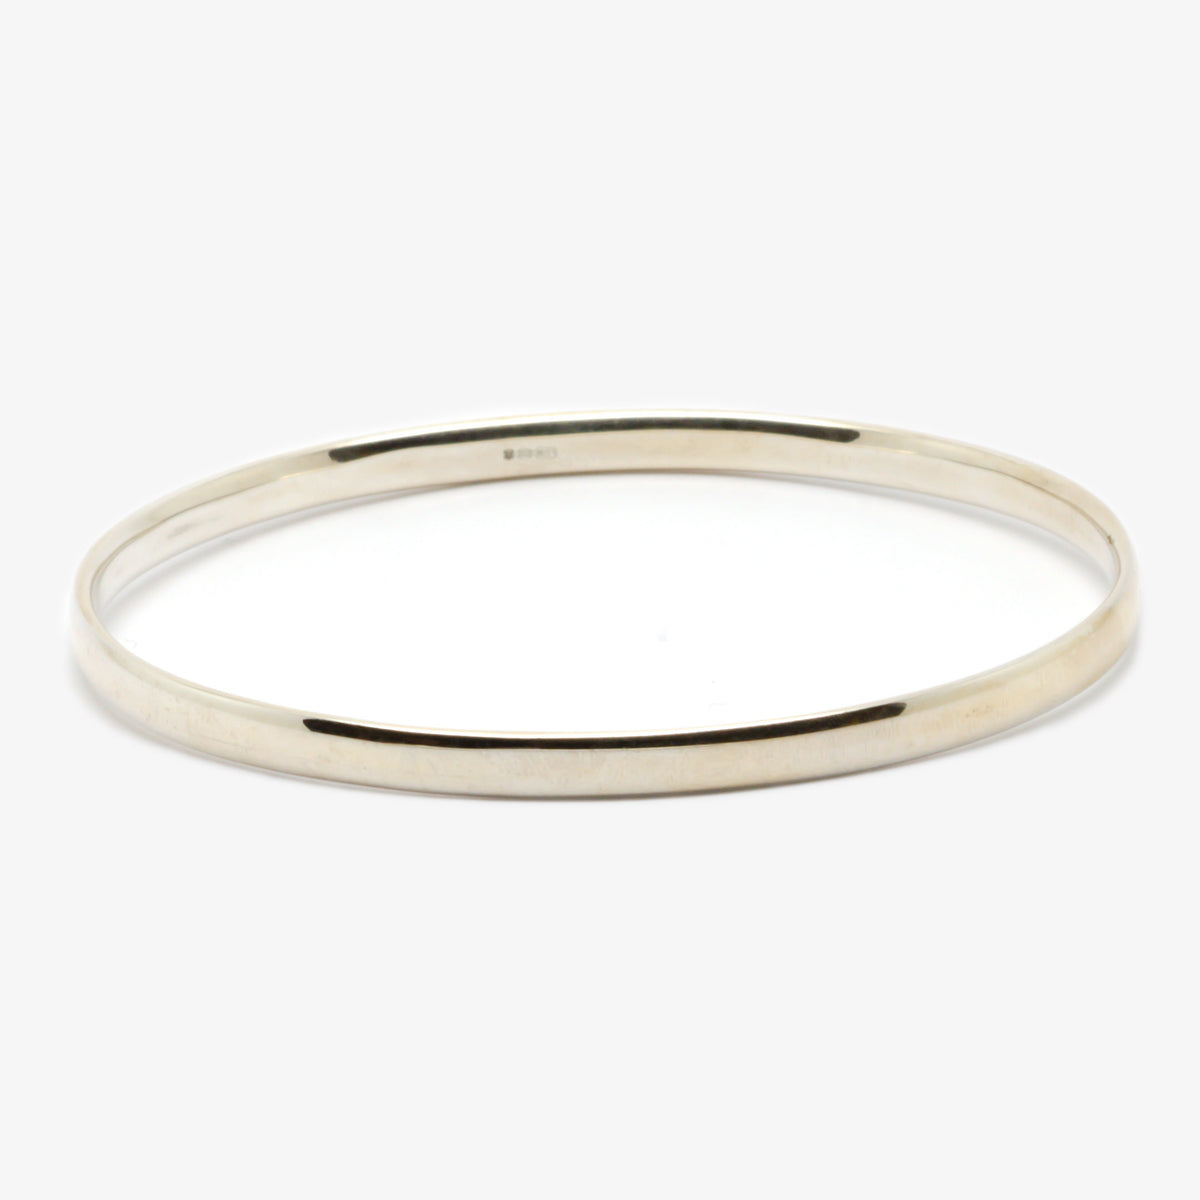 Bangle in silver in an oval shape front view.